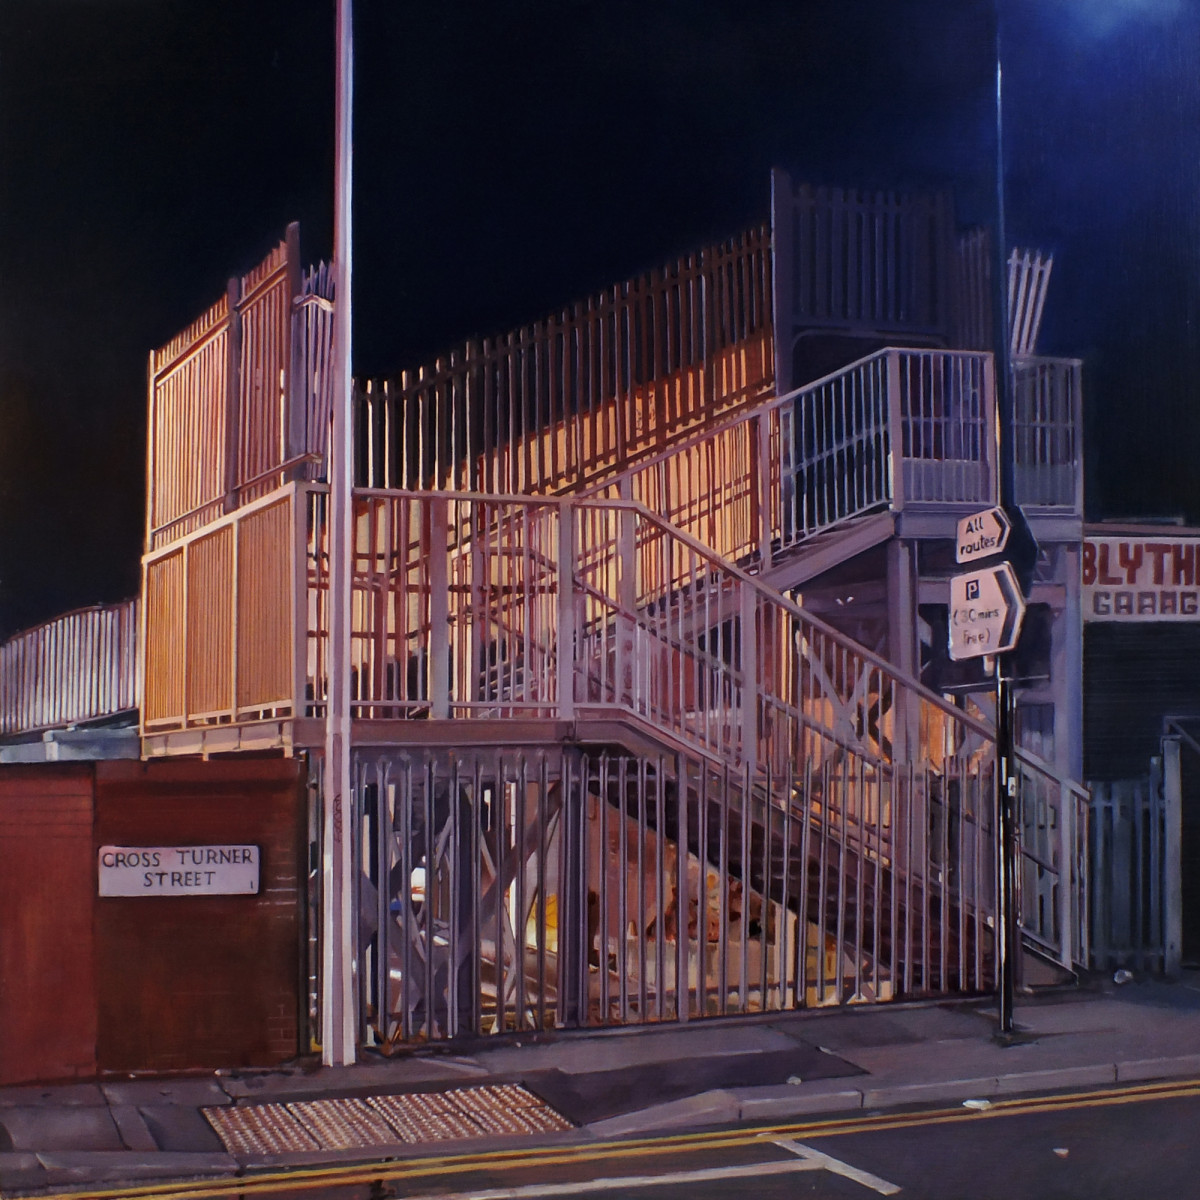 Muggers Bridge by Andy Cropper - a detailed painting of steps up to a footbridge at night